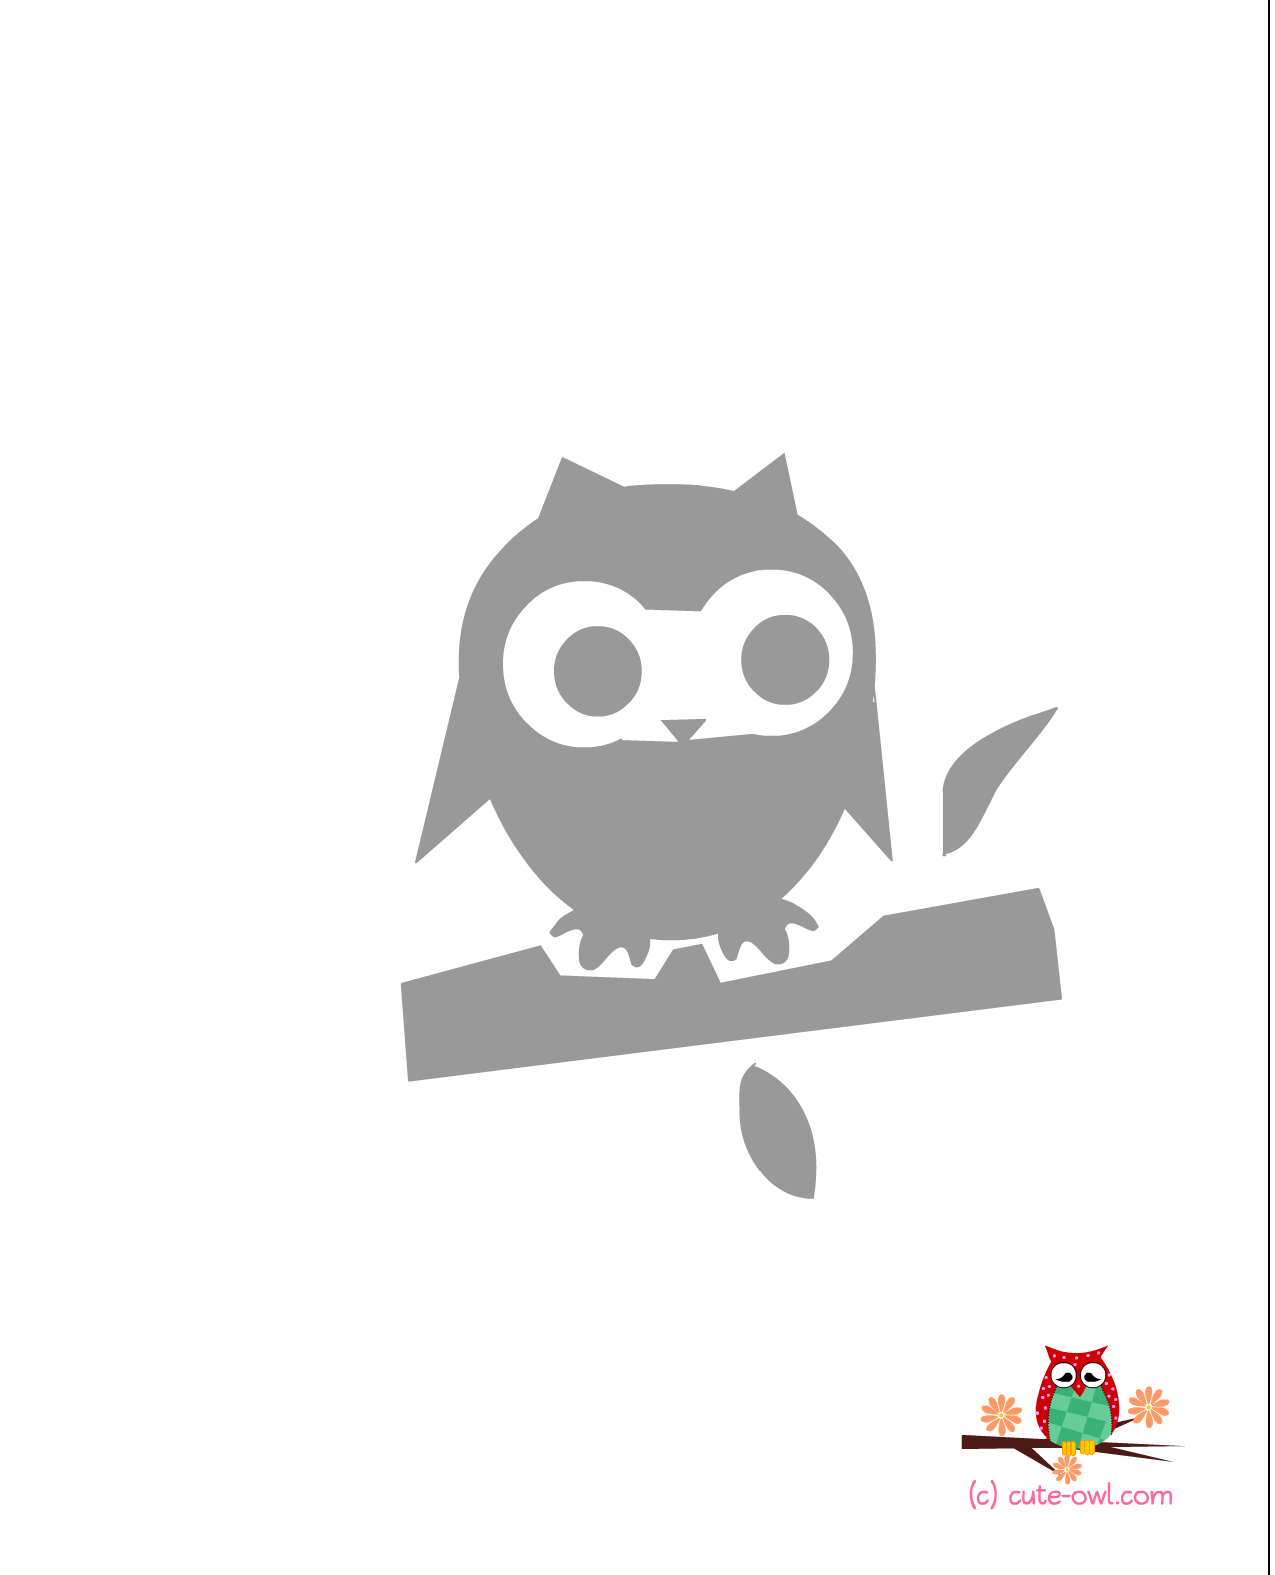 graphic regarding Printable Owl Stencil identified as Adorable Owl Stencils Free of charge Printable Little one Shower Owl stencil